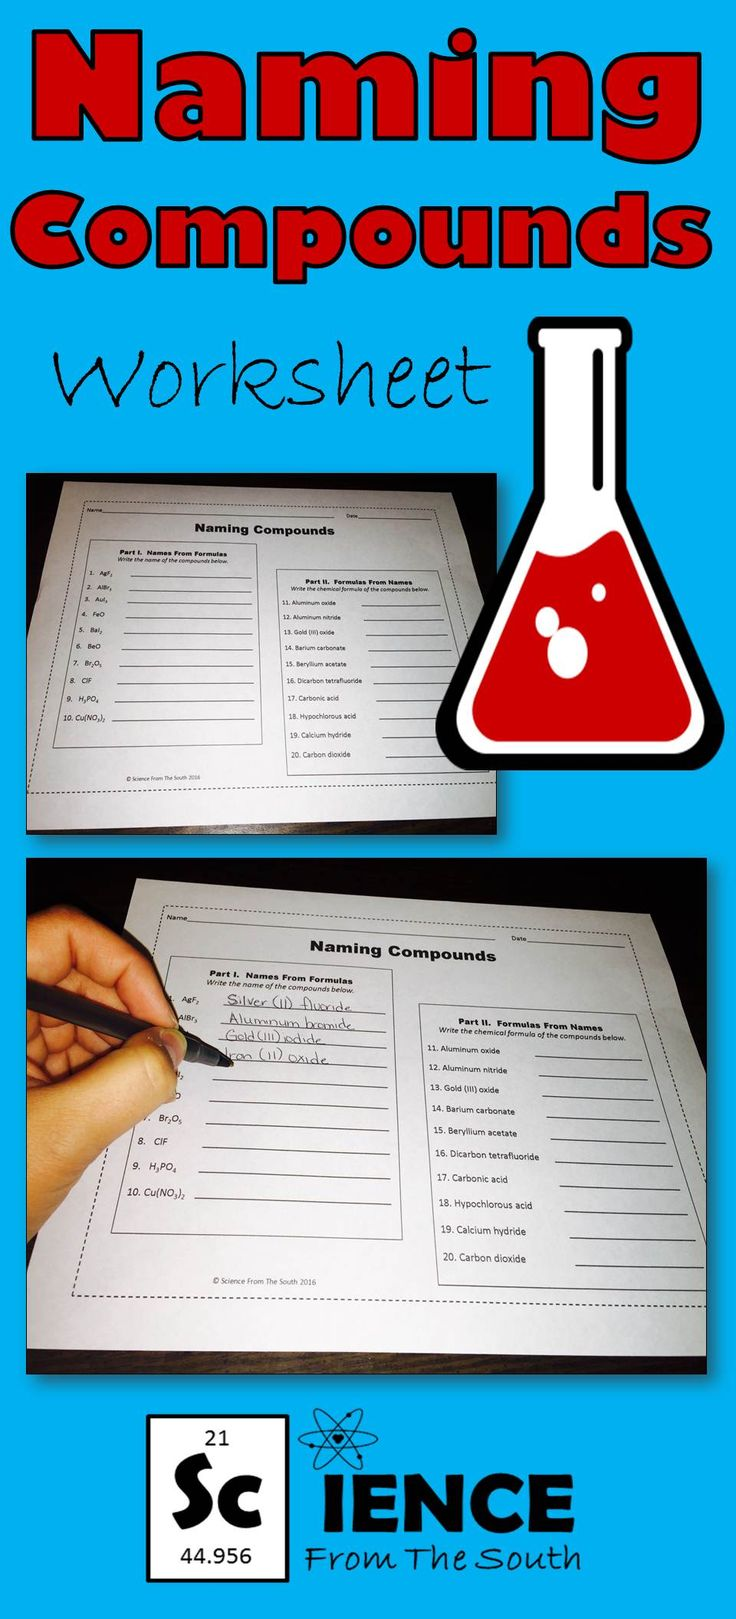 Quick worksheet to review or assess your students' understanding of naming compounds.